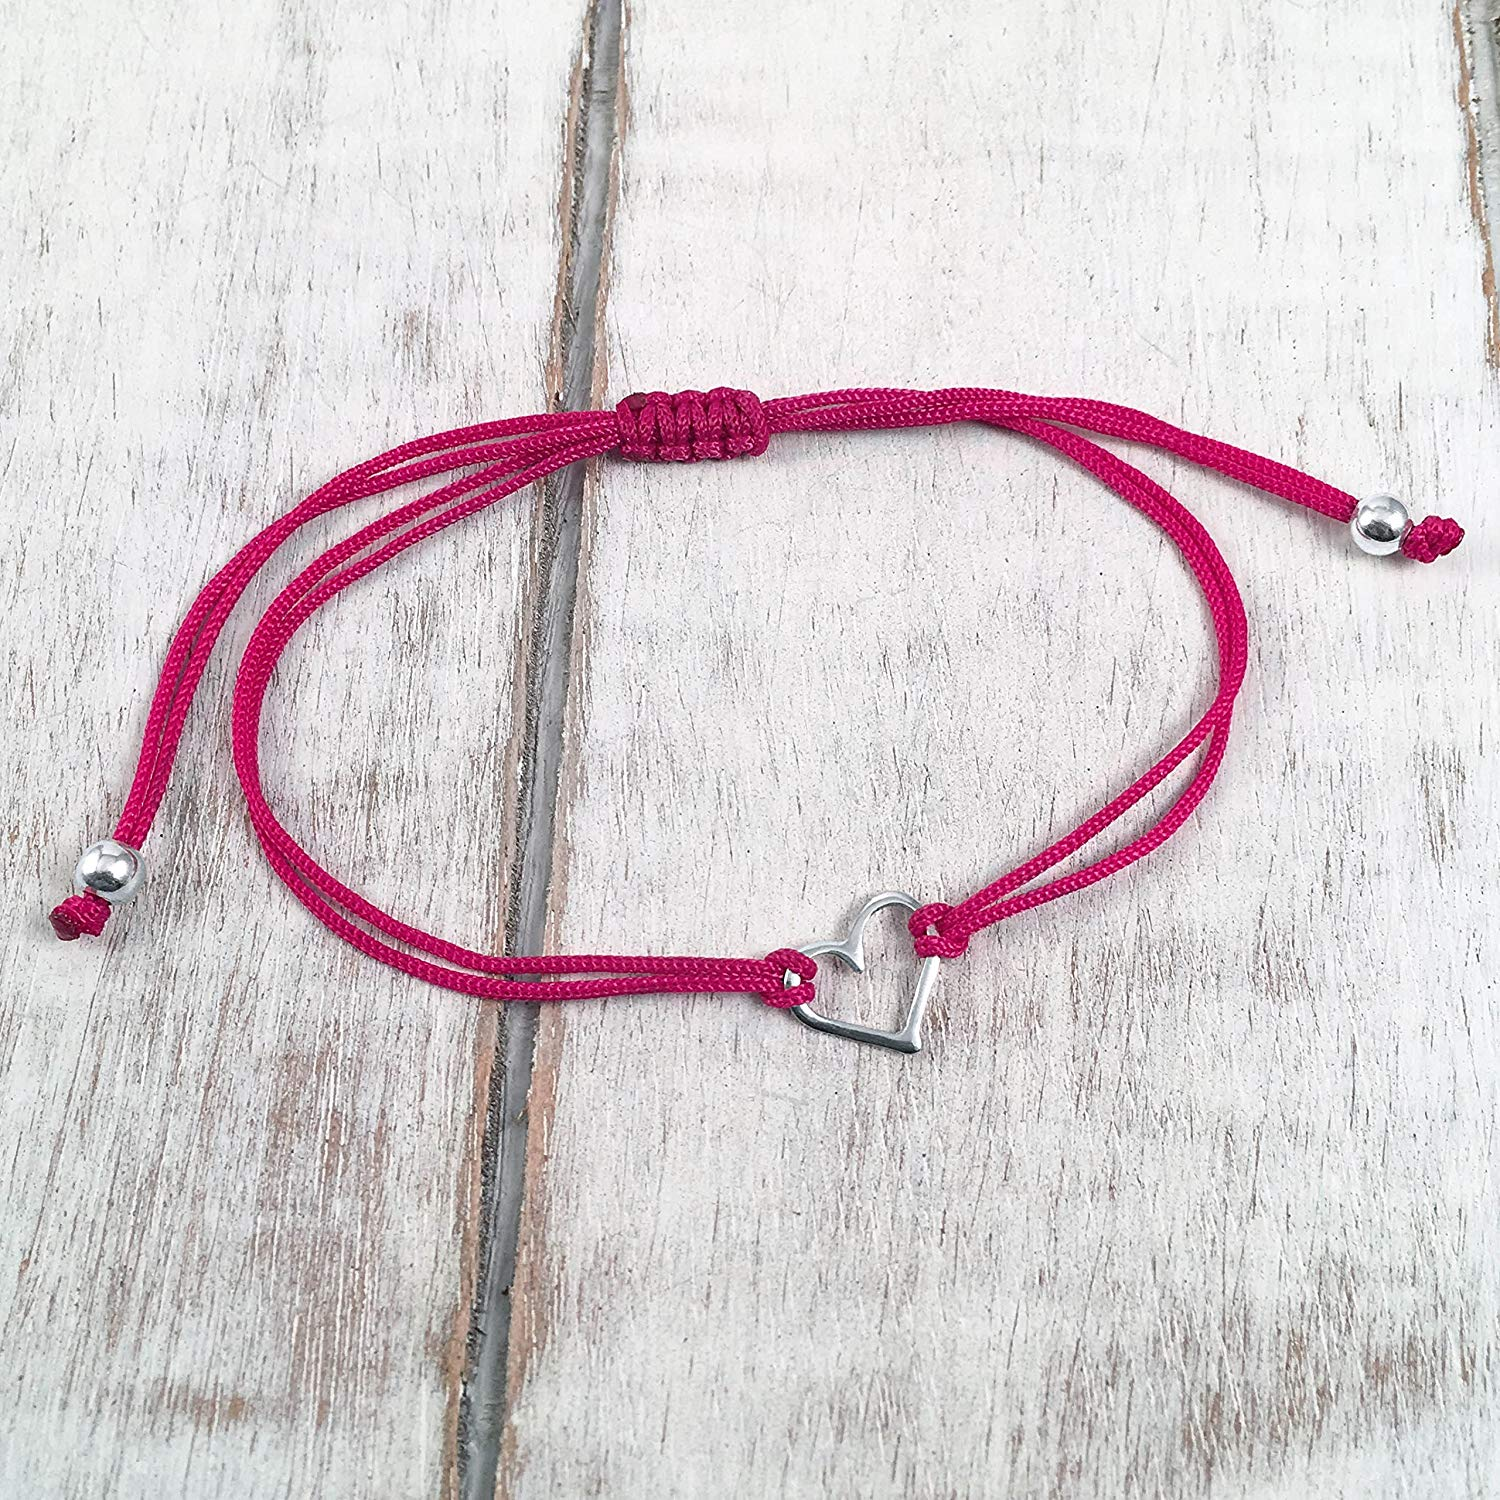 Fuchsia Pink, Small Sterling Silver Open Heart Shaped Charm Bracelet, Friendship Bracelet Adjustable Thread Cord, Handmade in Peru by Claudia Lira. Perfect for a Small Gift